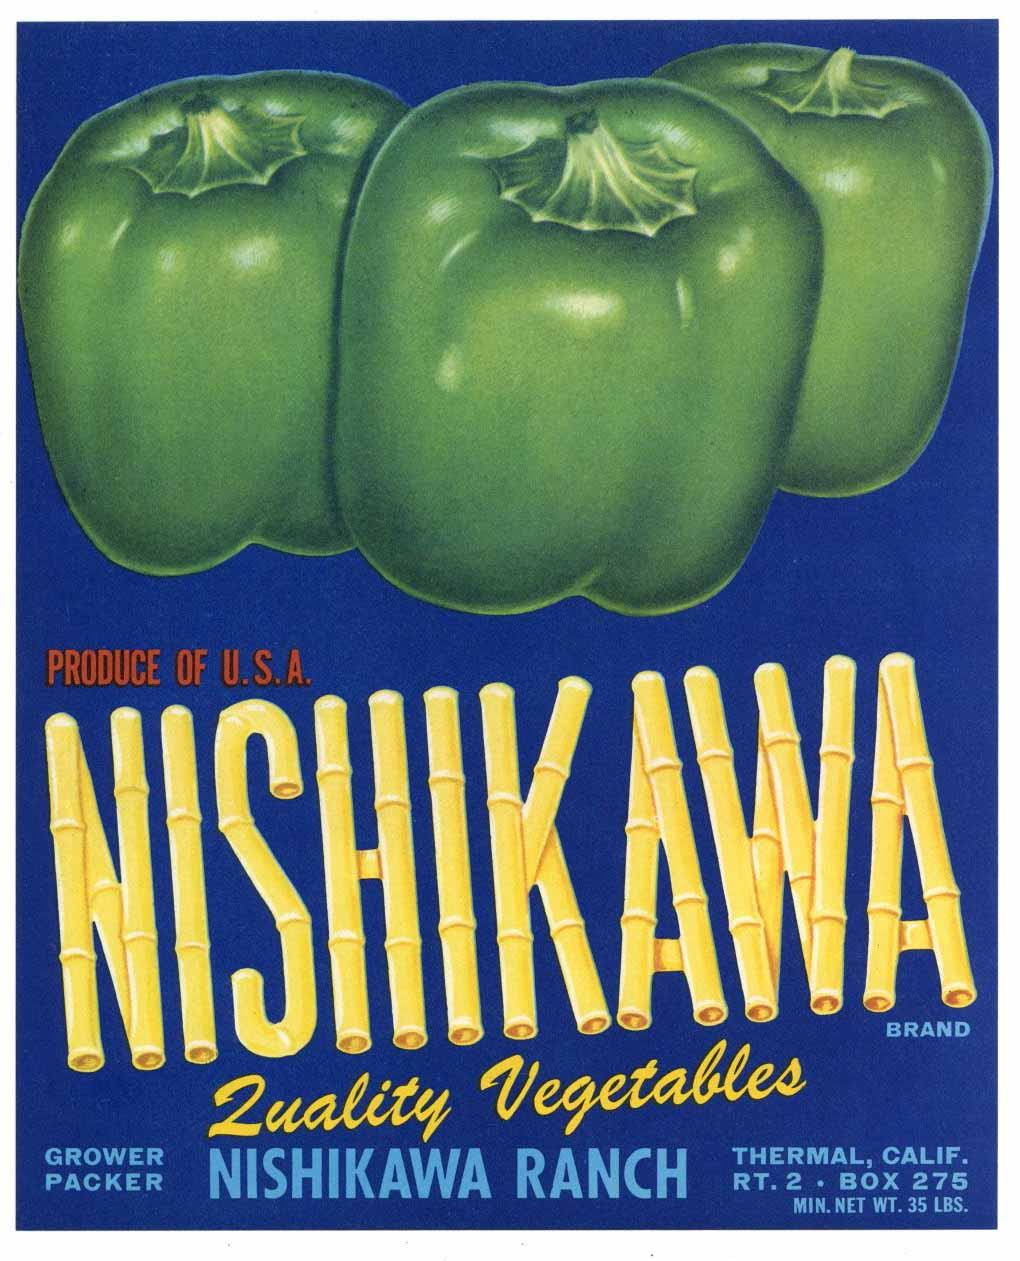 Nishikawa Brand Vintage Coachella Valley Pepper Crate Label